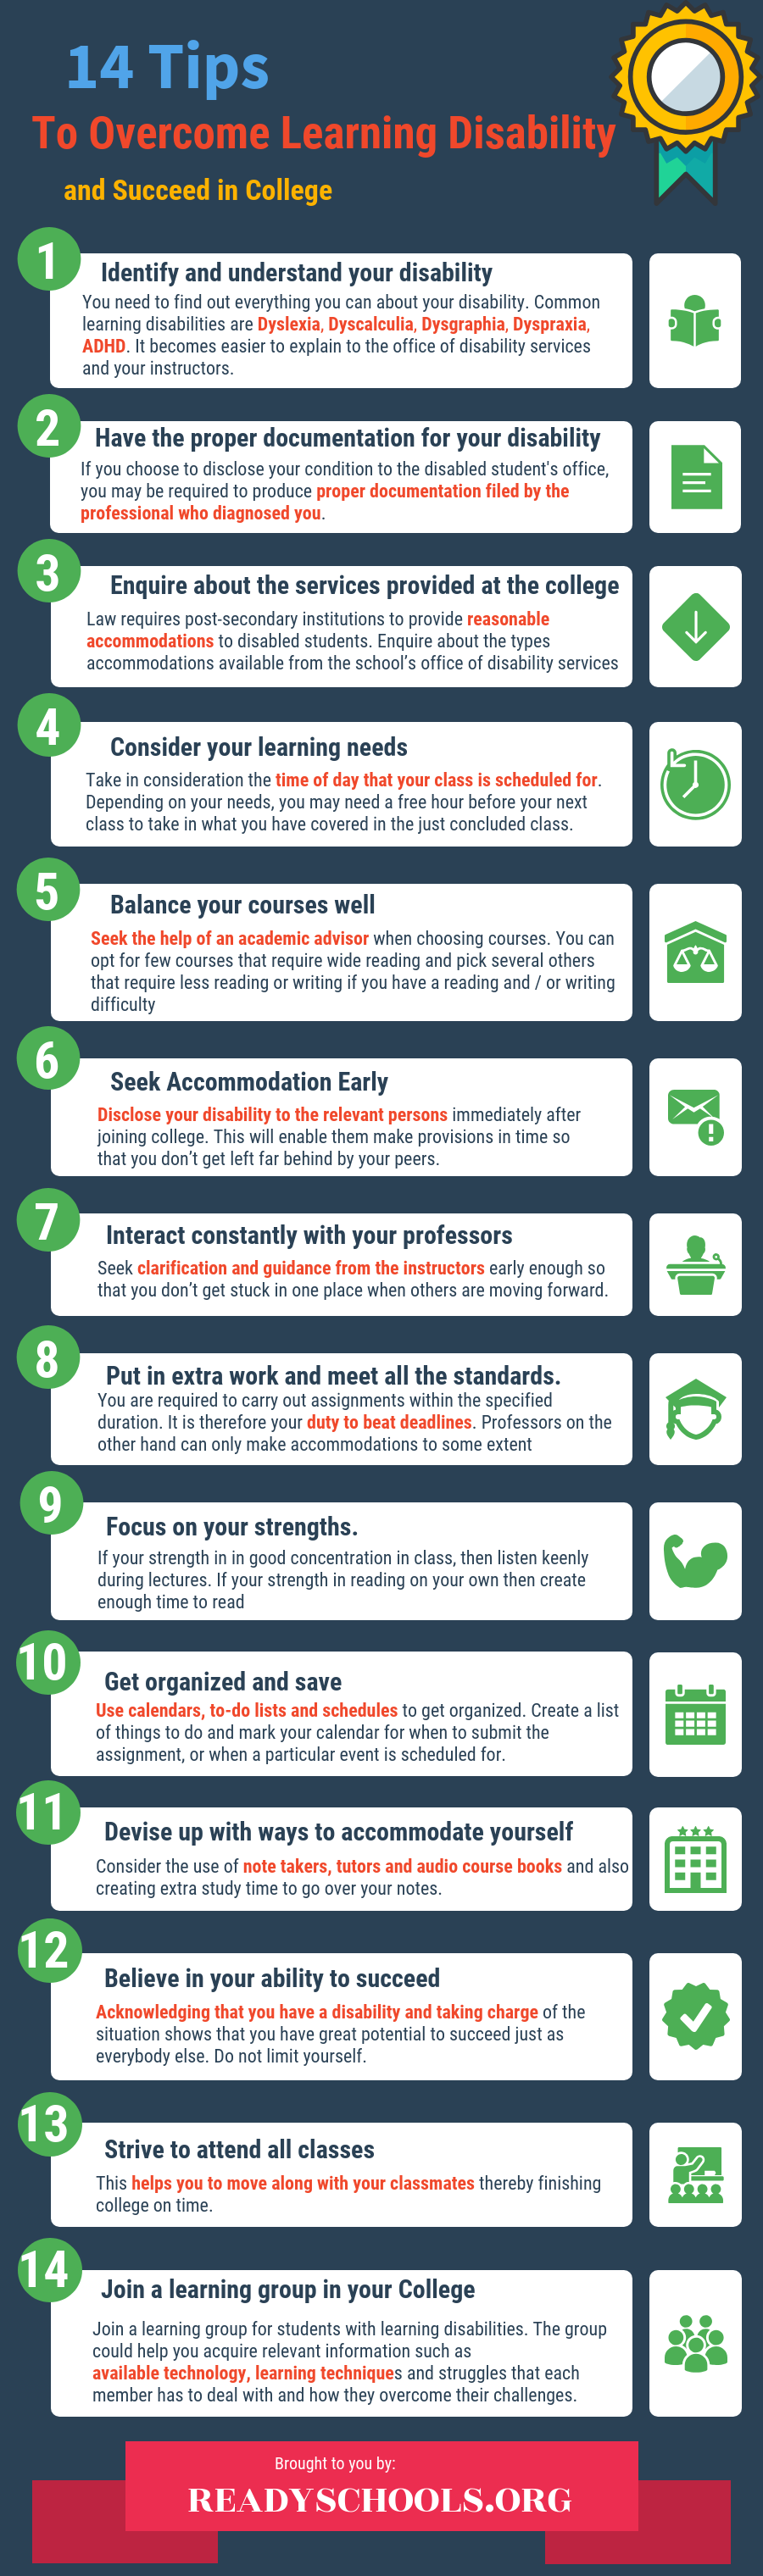 tips to overcome learning disability